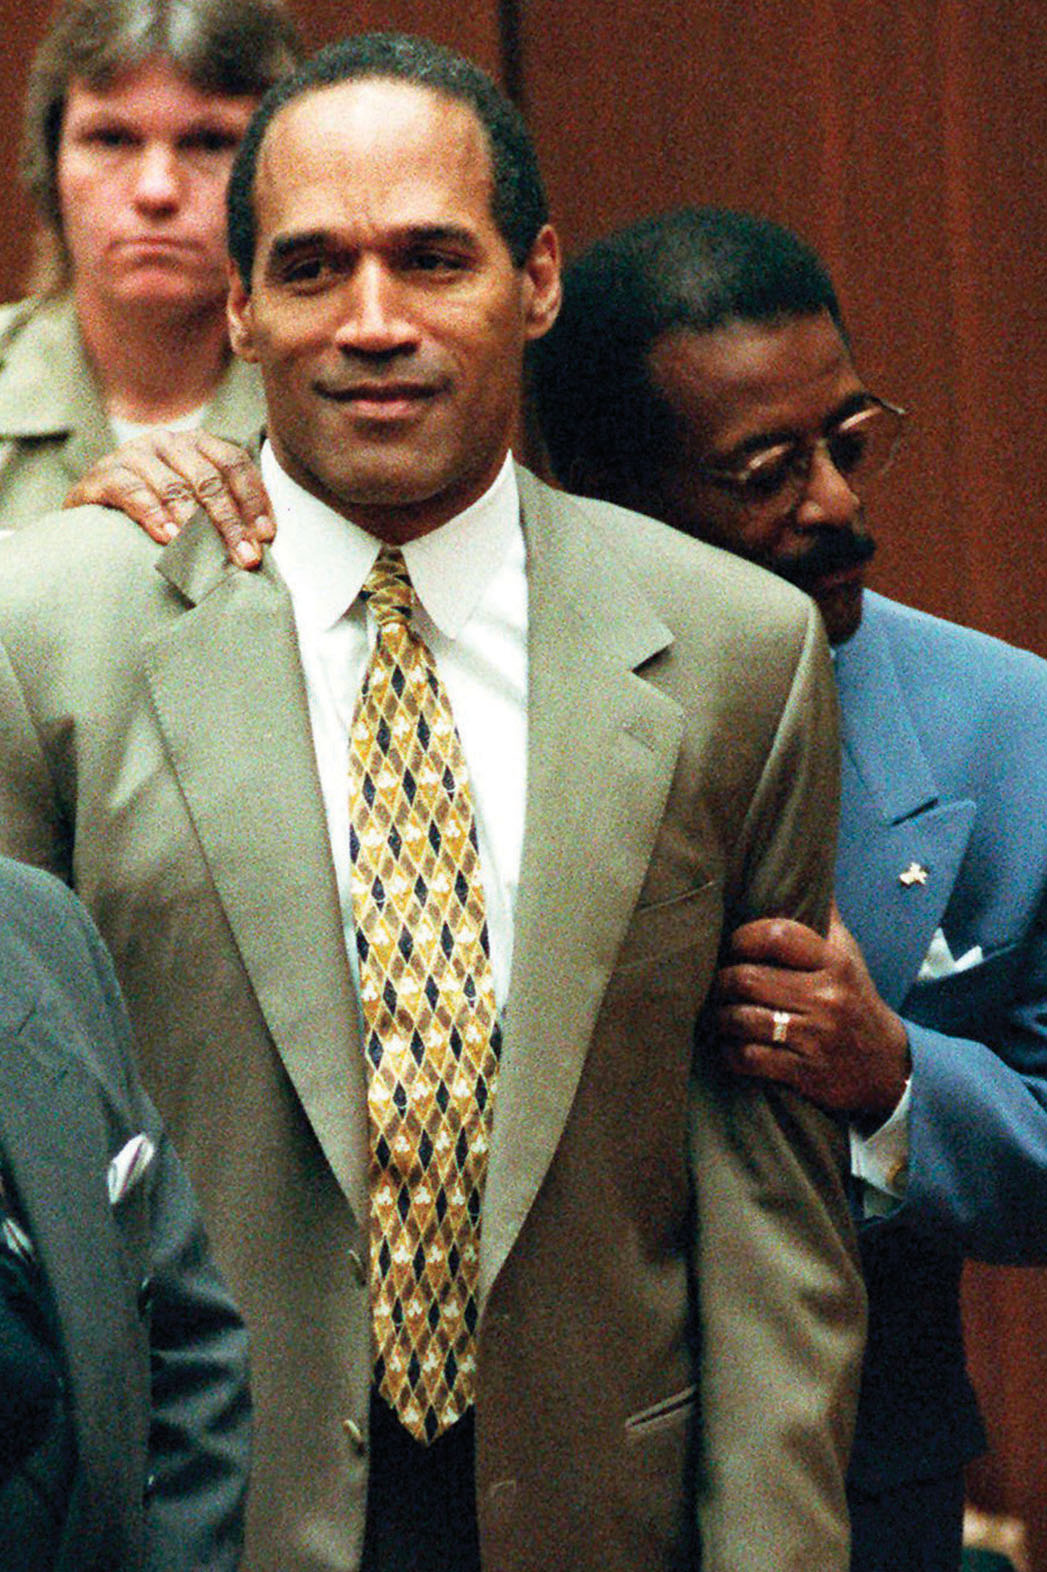 The Report - I CAN PROVE OJ IS INNOCENT - Johnnie Cochran Jr.and  O.J. Simpson - P 2016